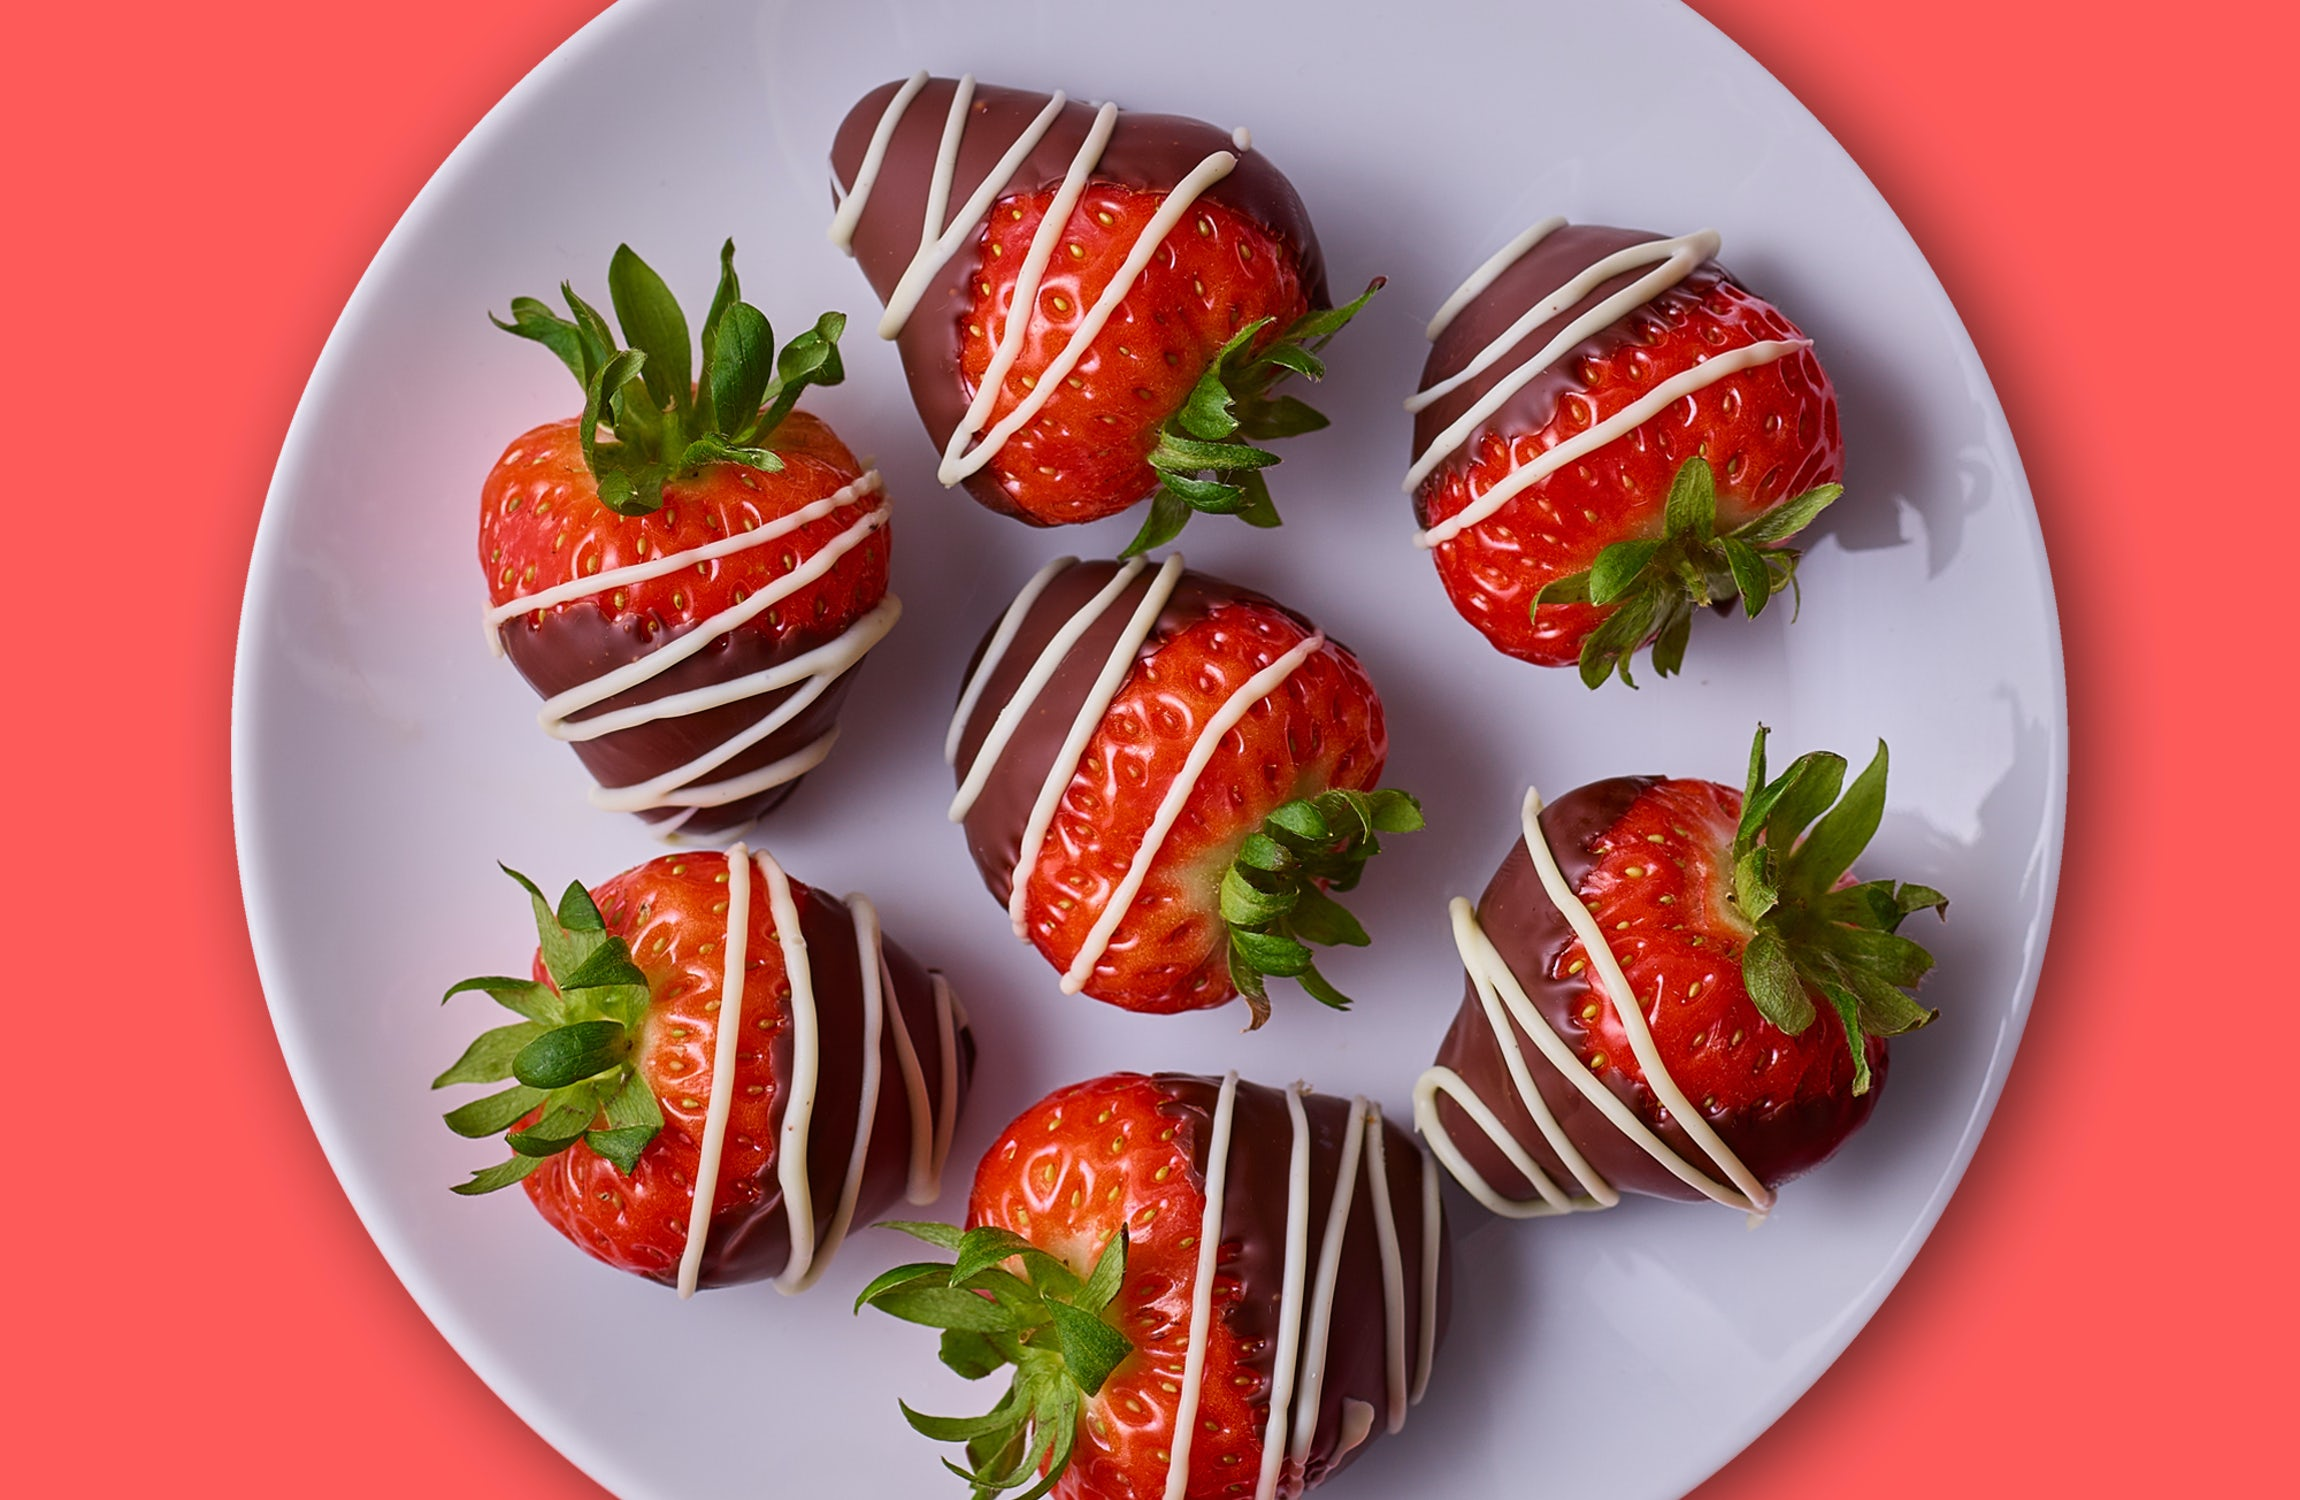 Chocolate Covered Scrumptious Strawberries